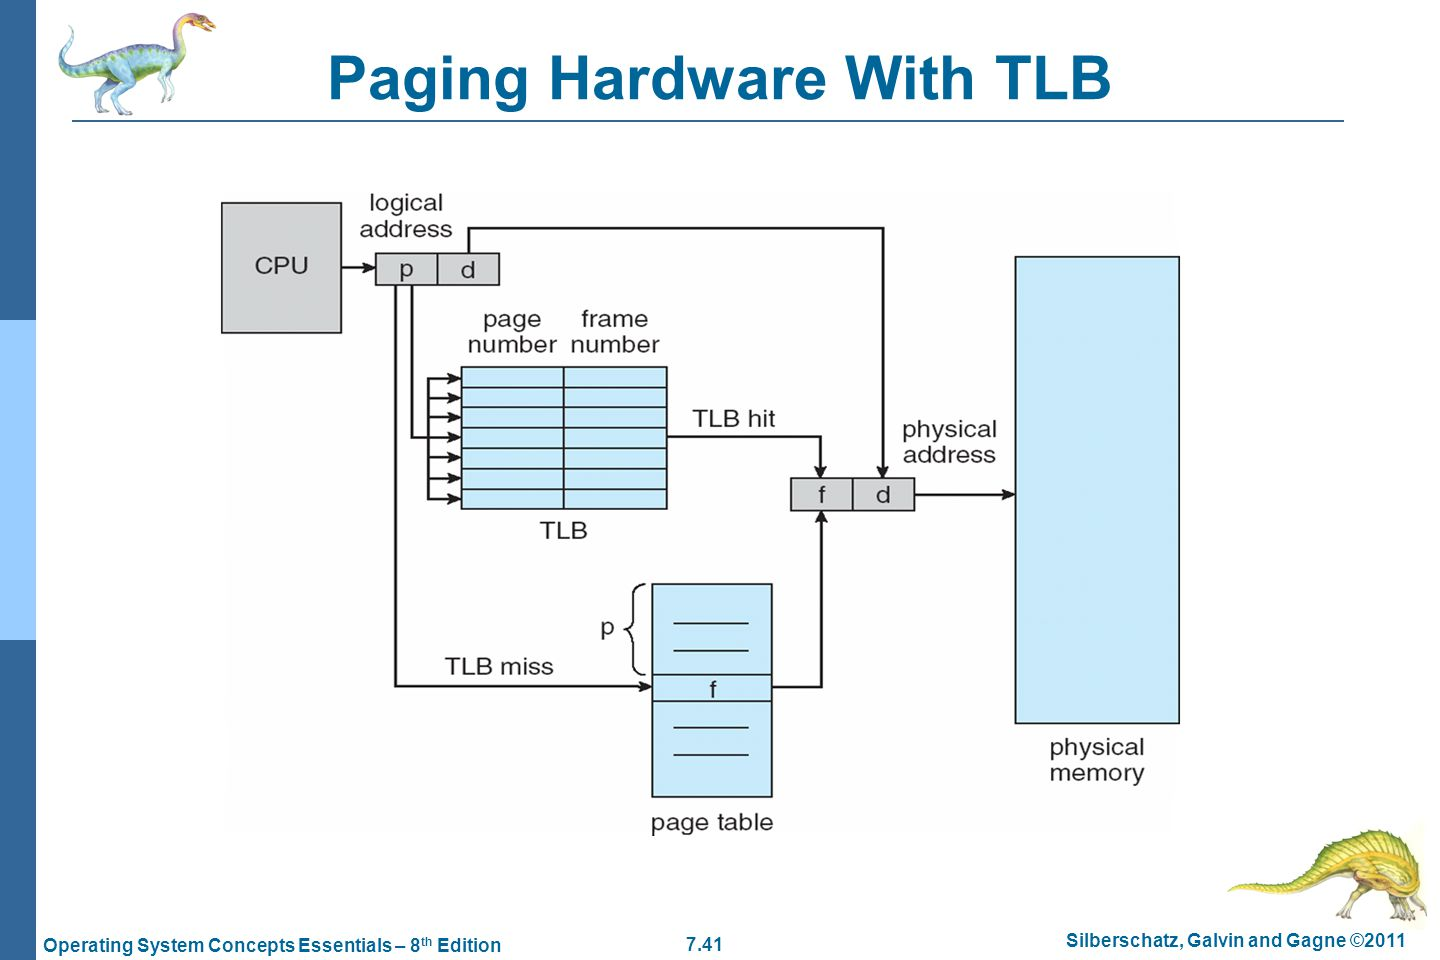 7.41 Silberschatz, Galvin and Gagne ©2011 Operating System Concepts Essentials – 8 th Edition Paging Hardware With TLB